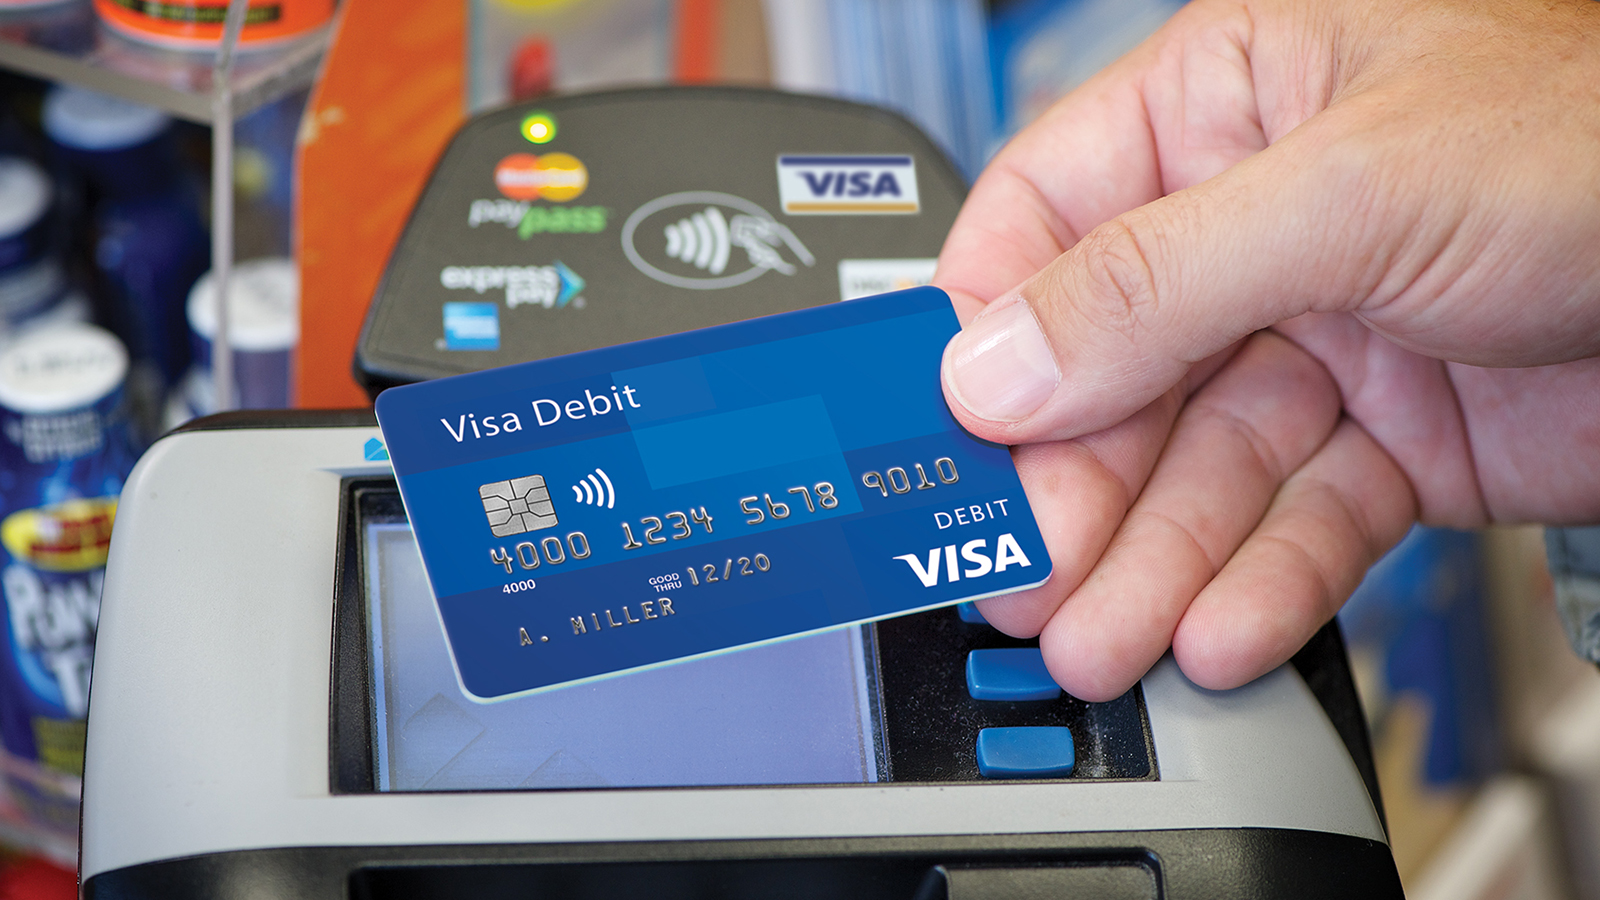 Person using a Visa payWave debit card at a payment terminal.